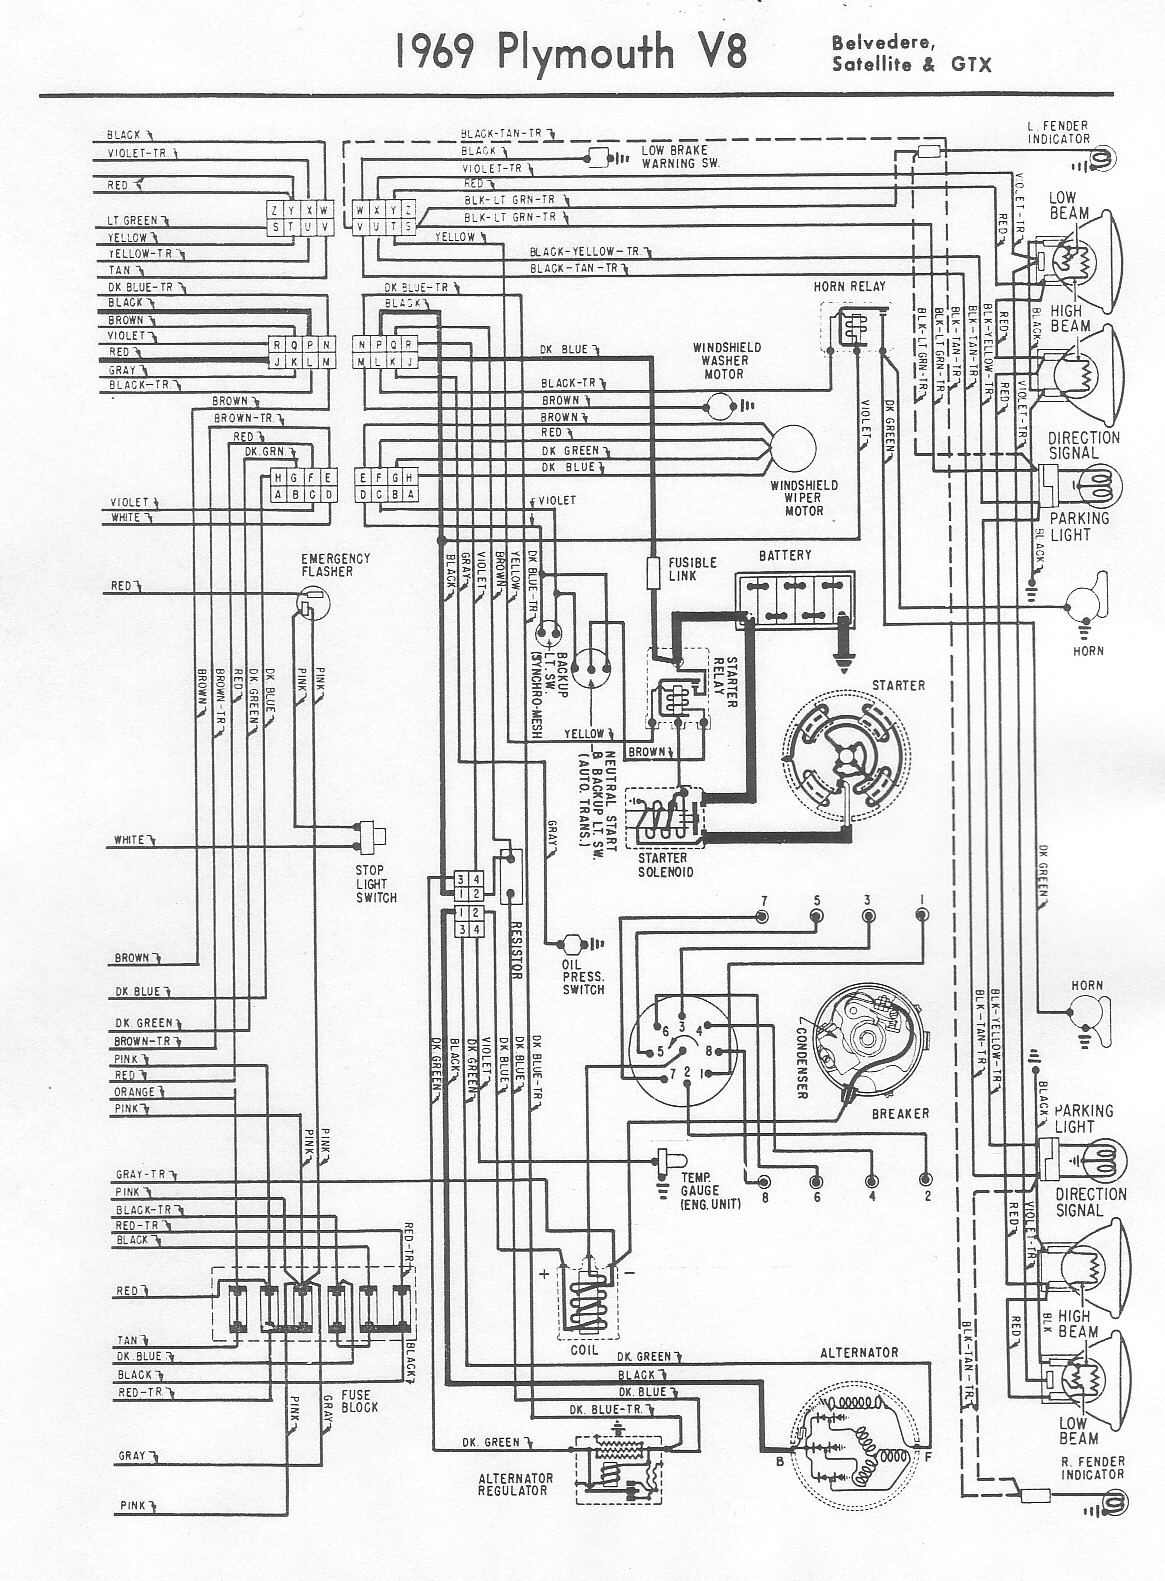 Strange 69 Charger Headlight Wiring Diagram Wiring Diagram Data Schema Wiring Cloud Oideiuggs Outletorg